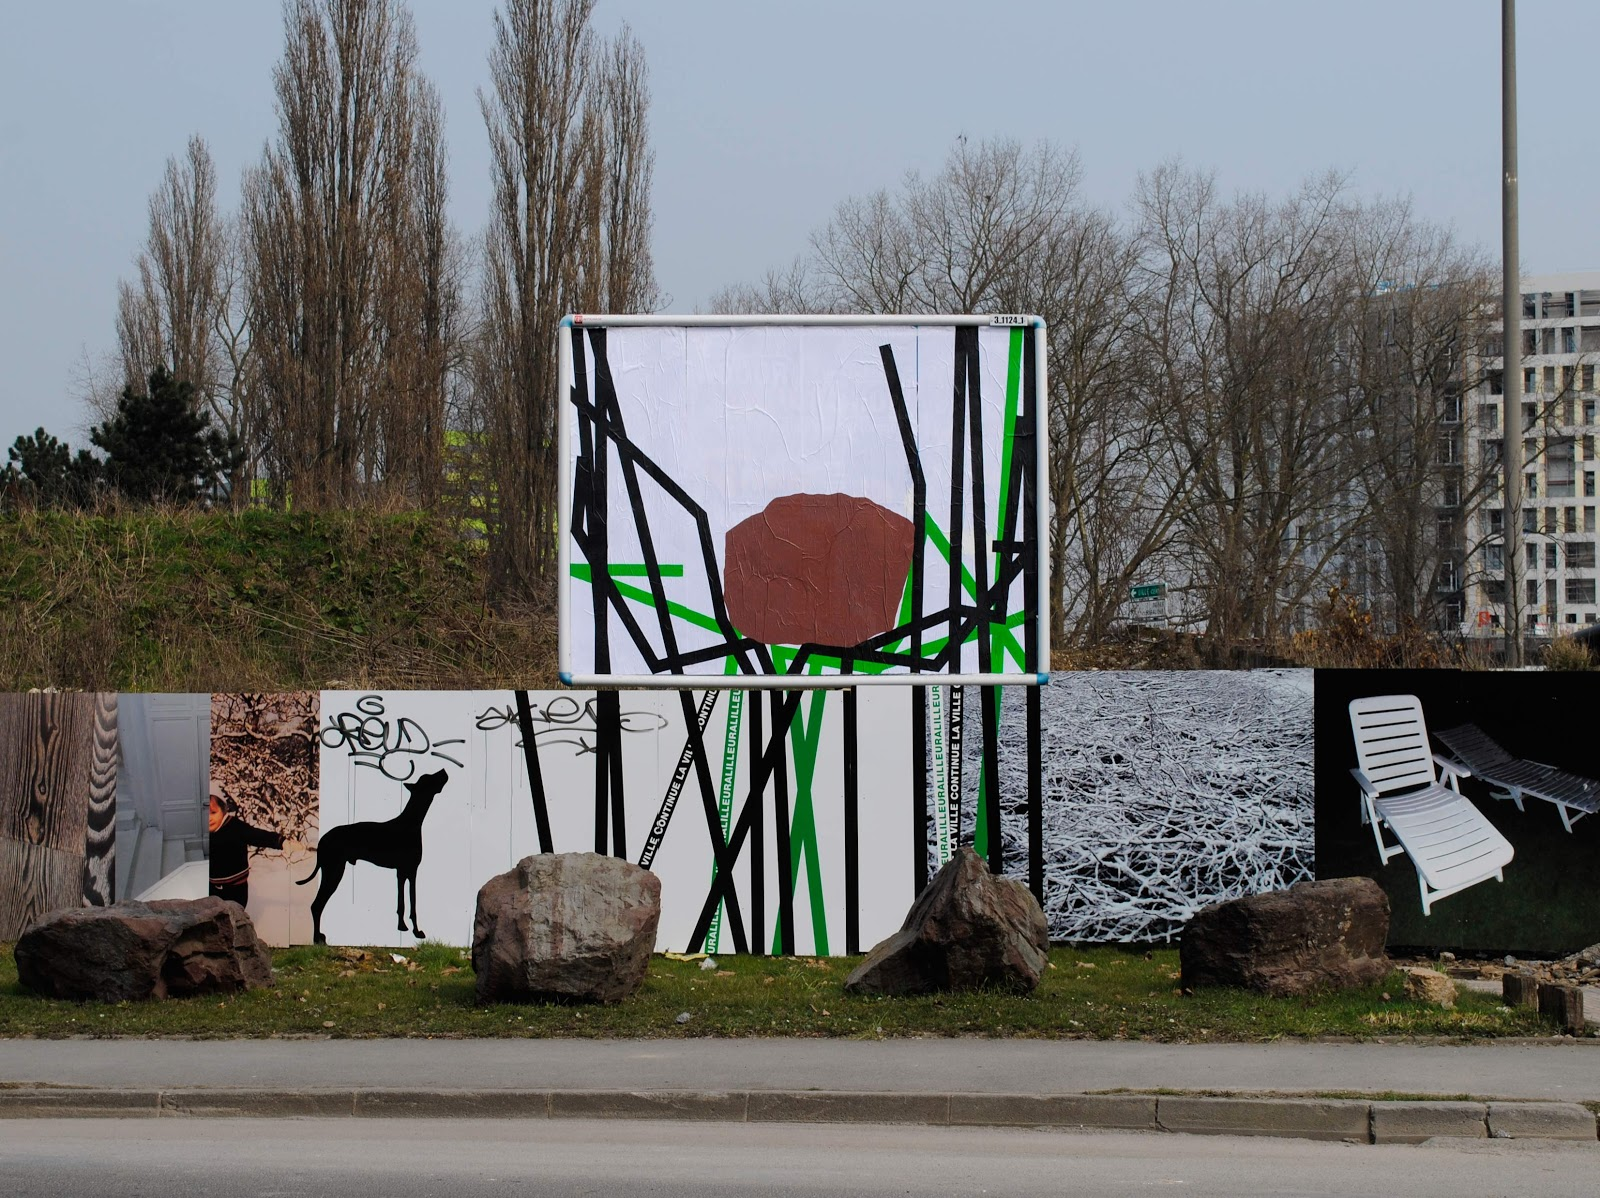 Billboards by Ox_01